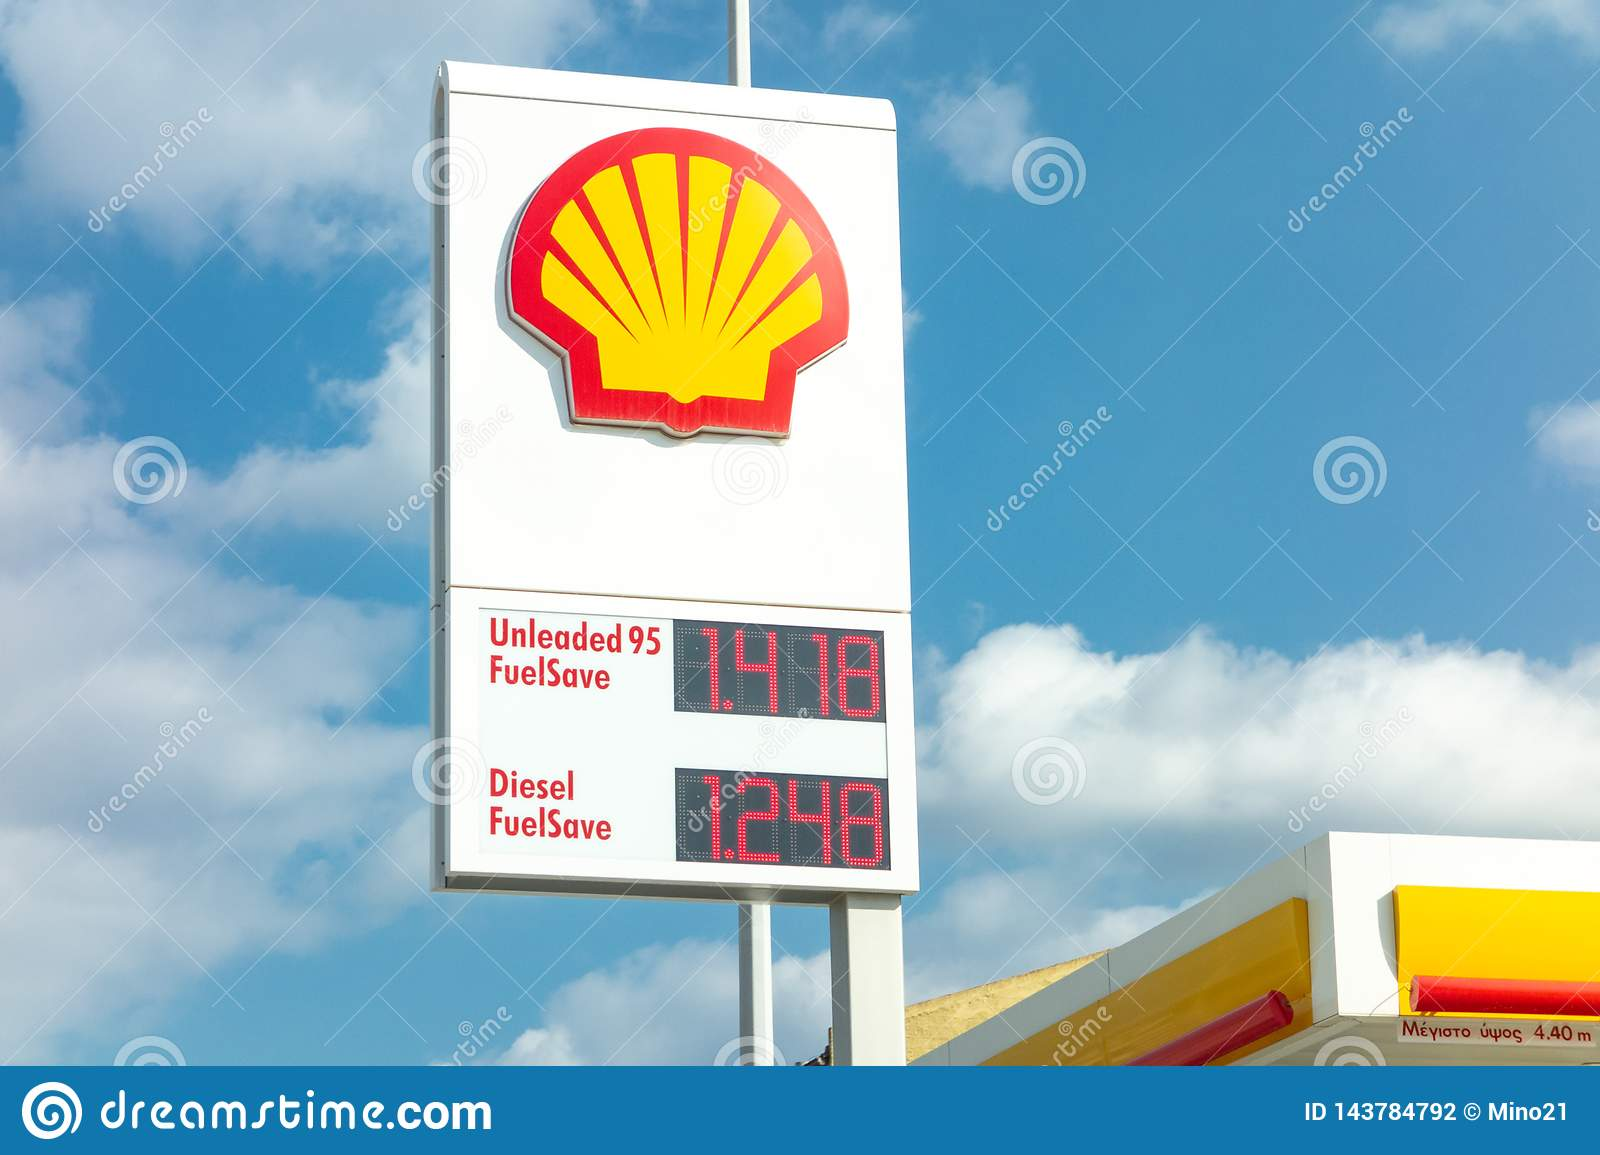 Shell gas station banner with a company logo andfuels provided with their prices